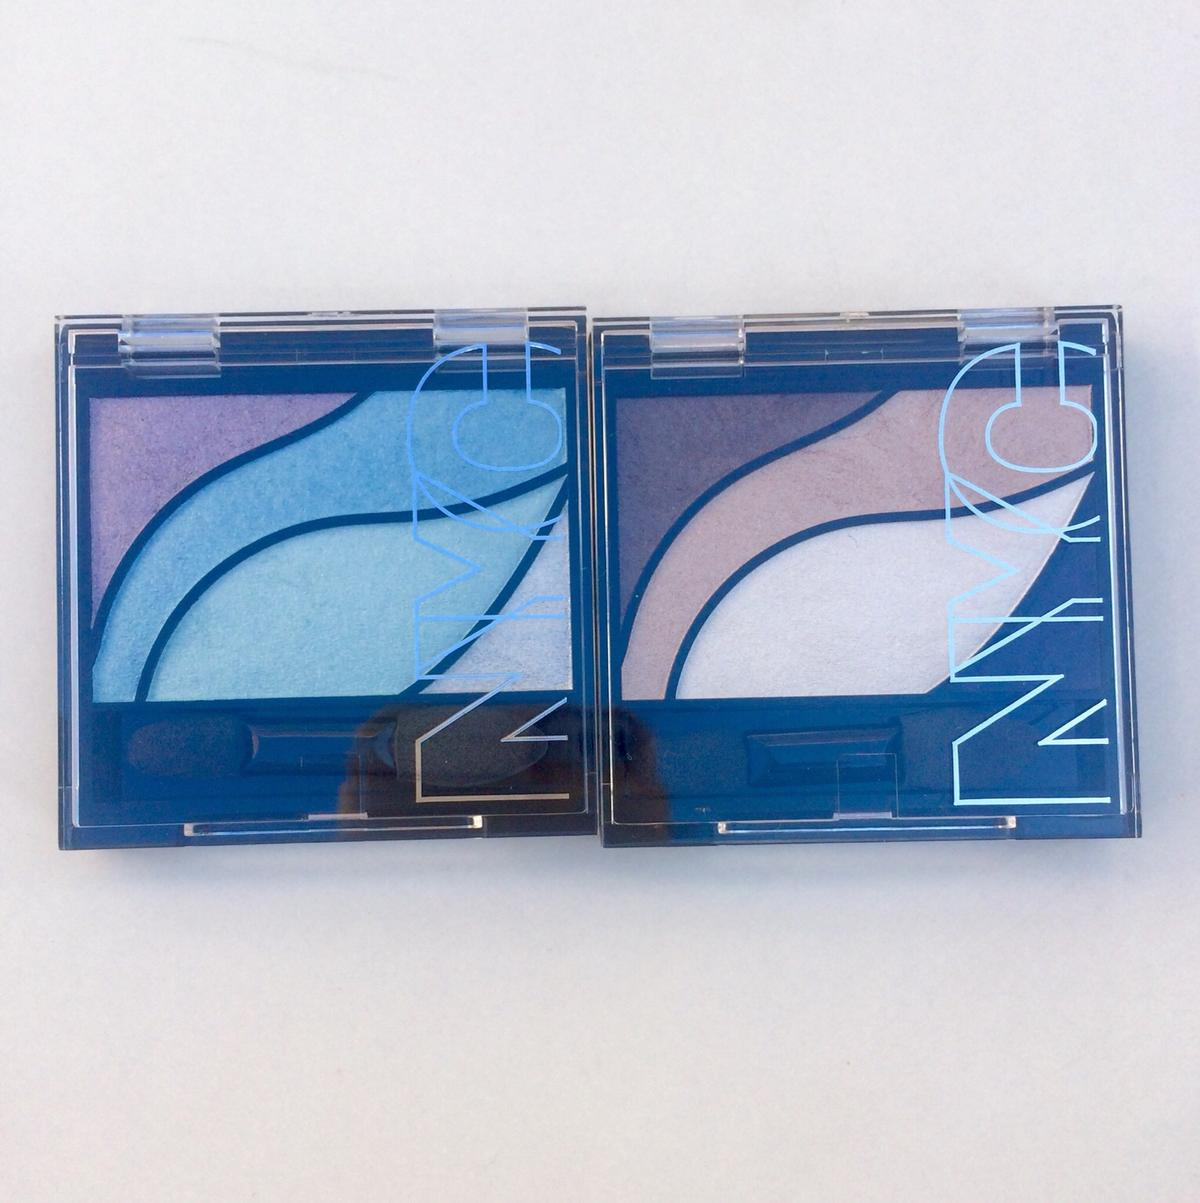 2 BRAND NEW PALLETS NYC EYESHADOW in LE4 Leicester for £4 00